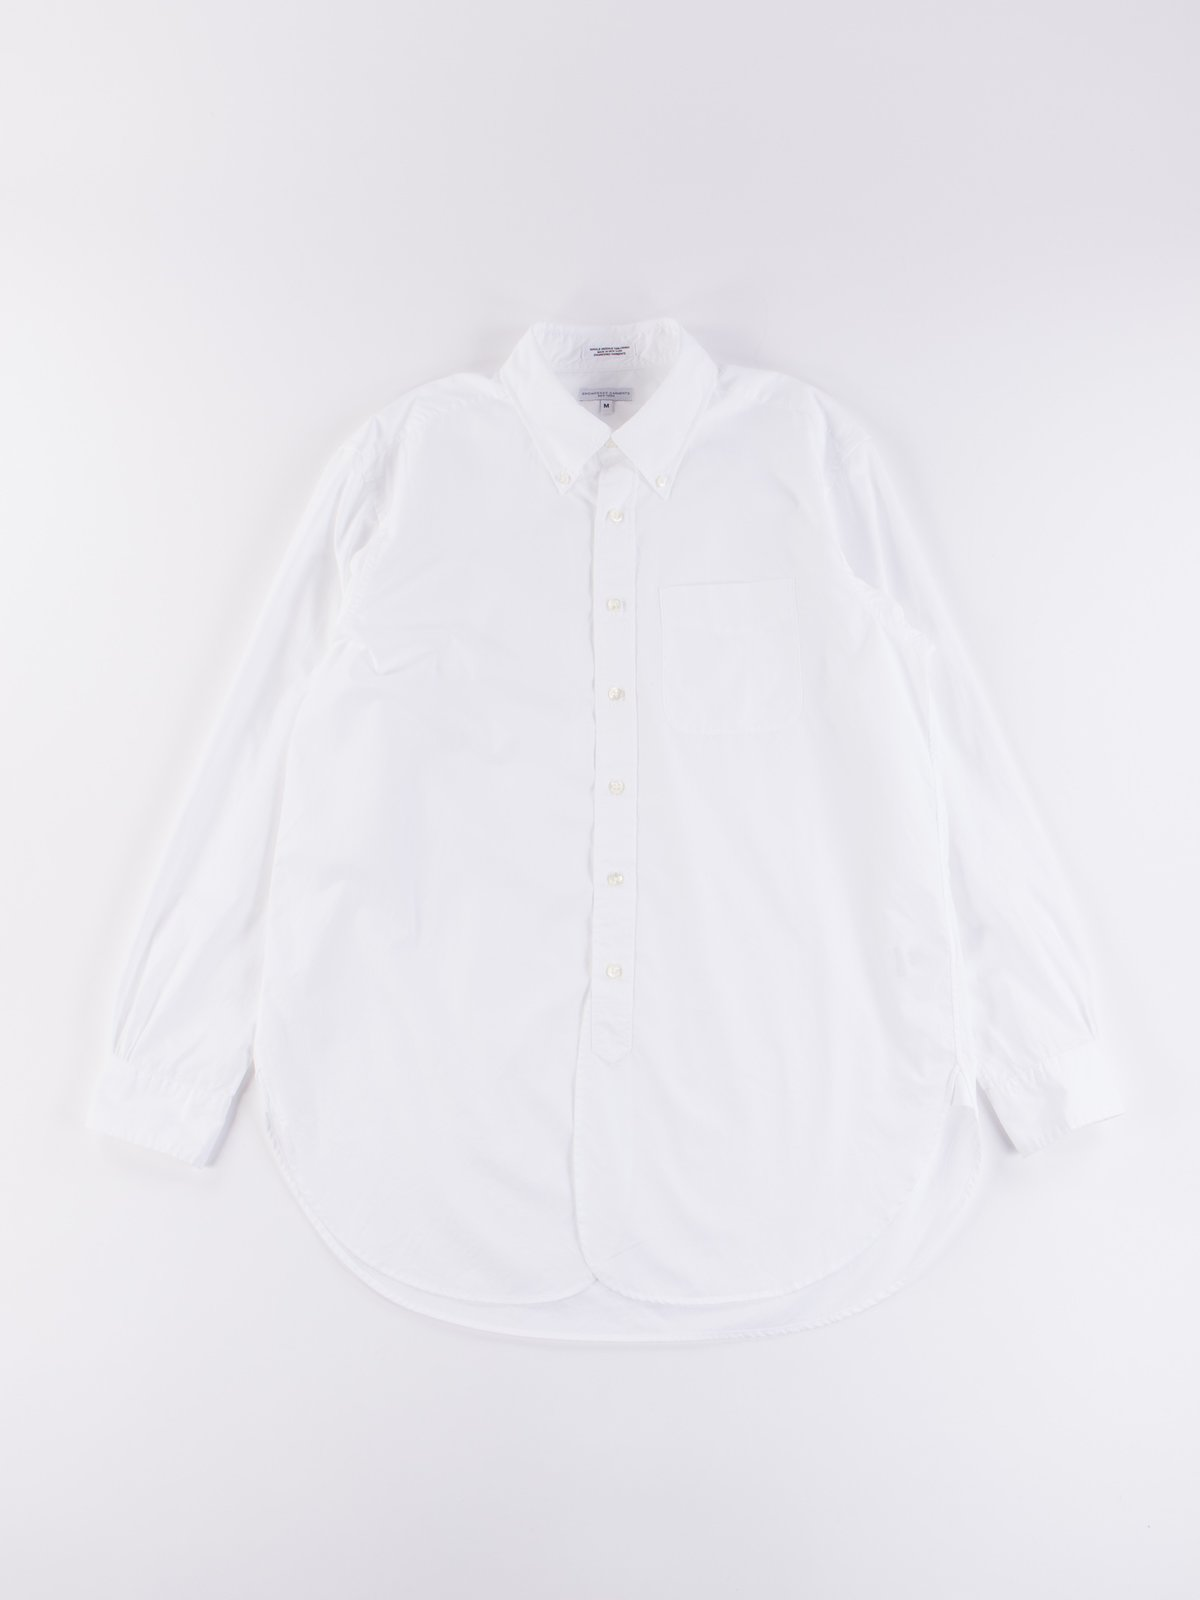 White 100's 2Ply Broadcloth 19th Century BD Shirt - Image 1